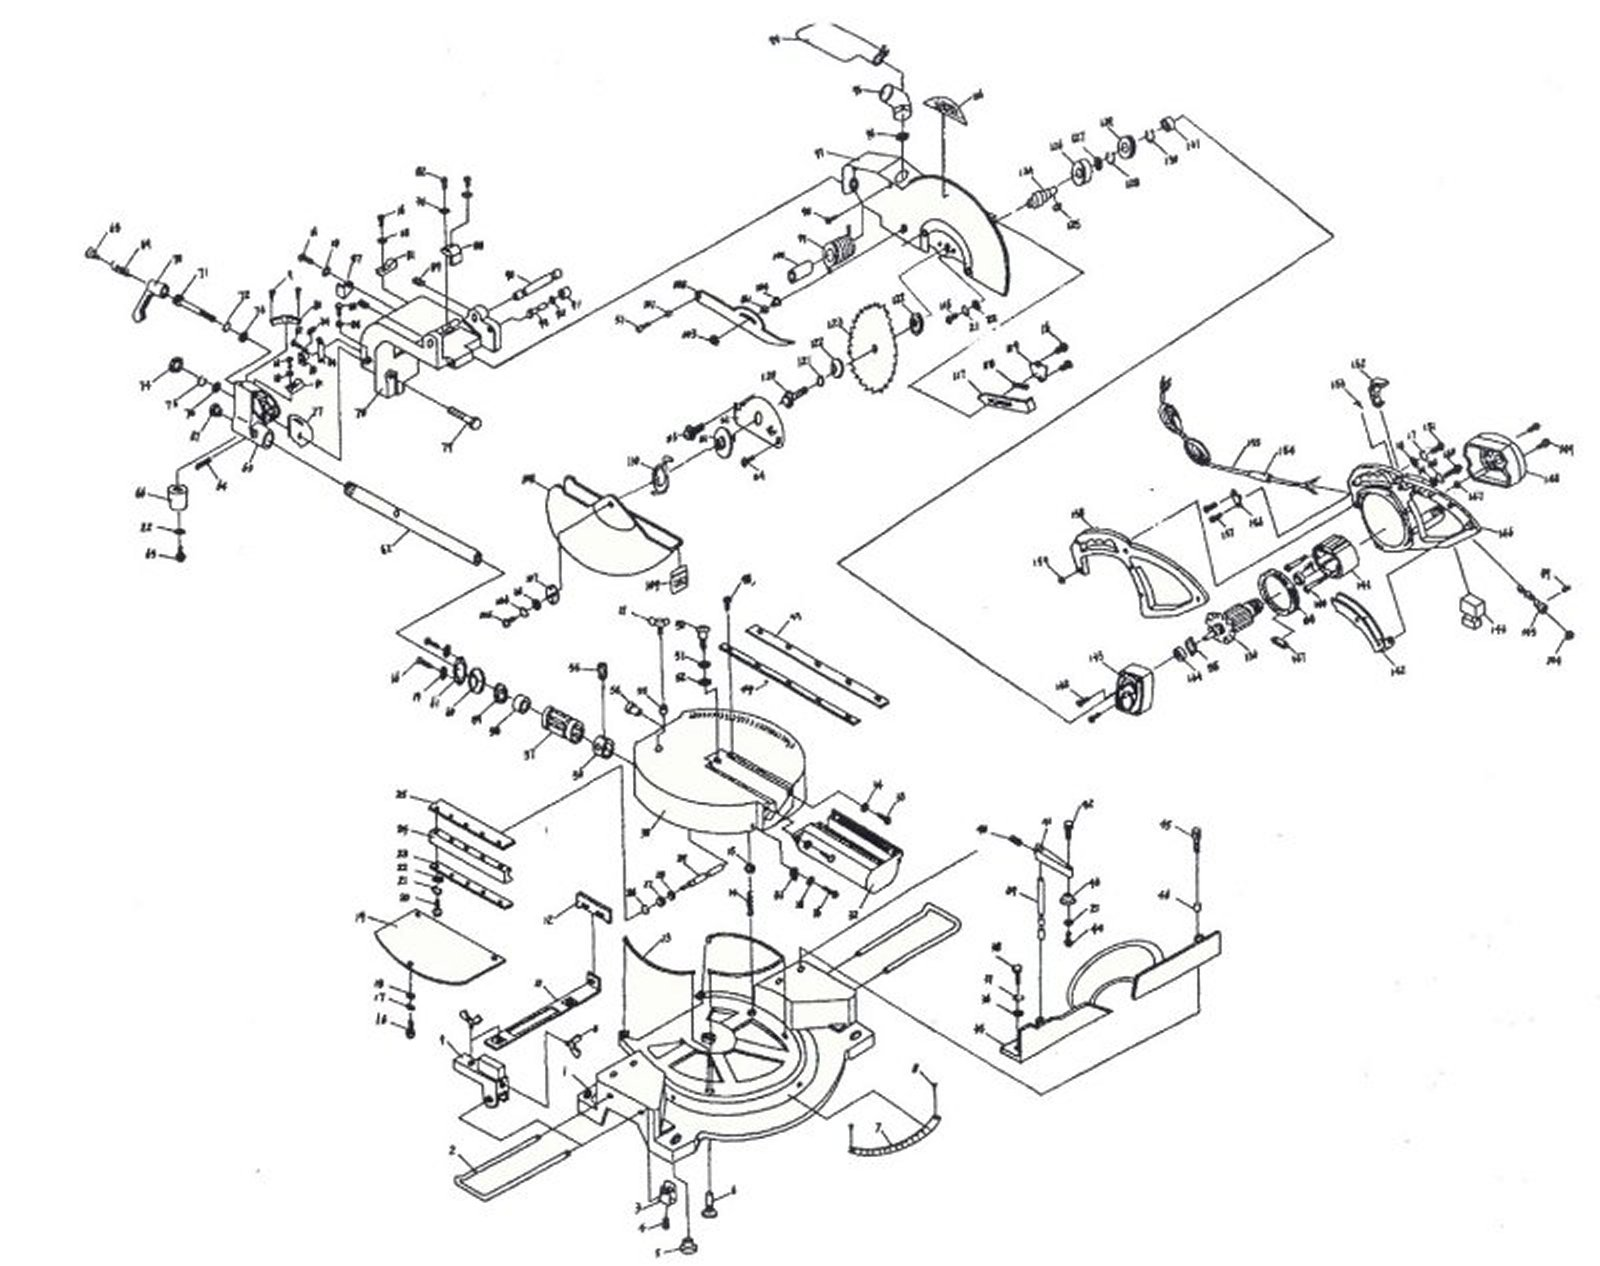 Sip Amp 12 Sliding Compound Mitre Saw Diagram